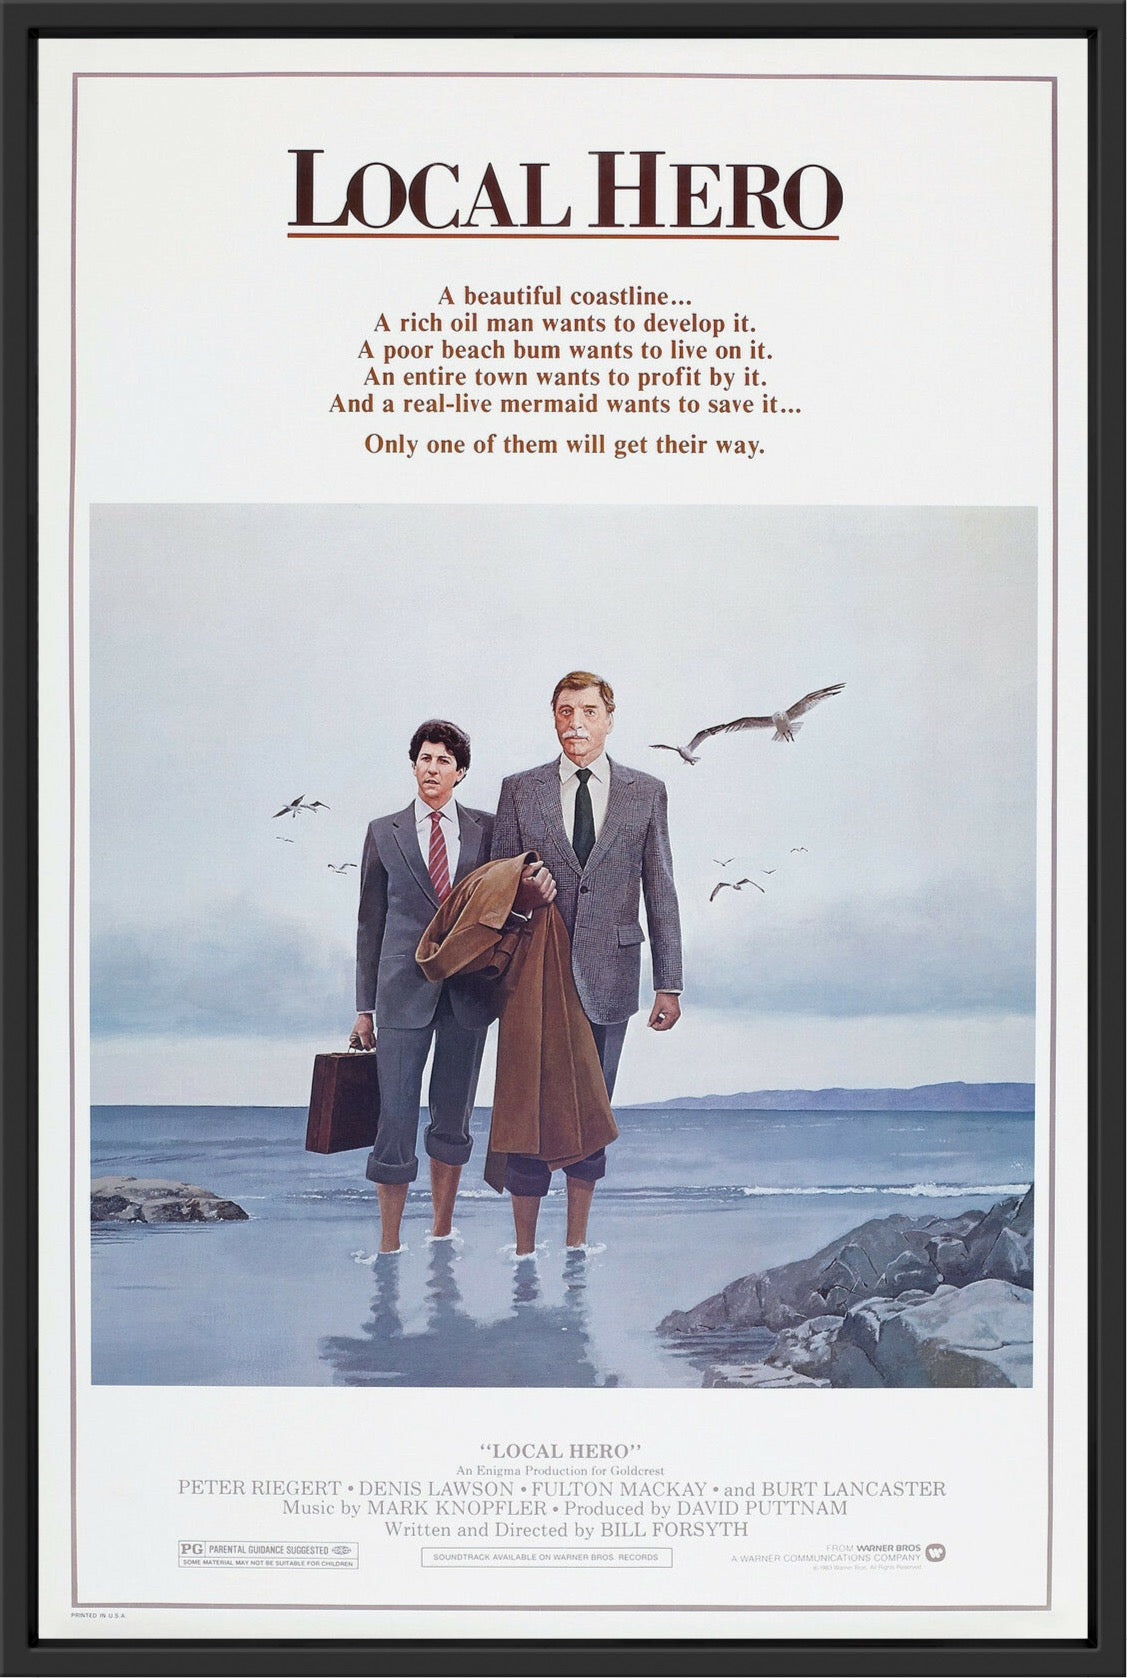 An original movie poster for the film Local Hero